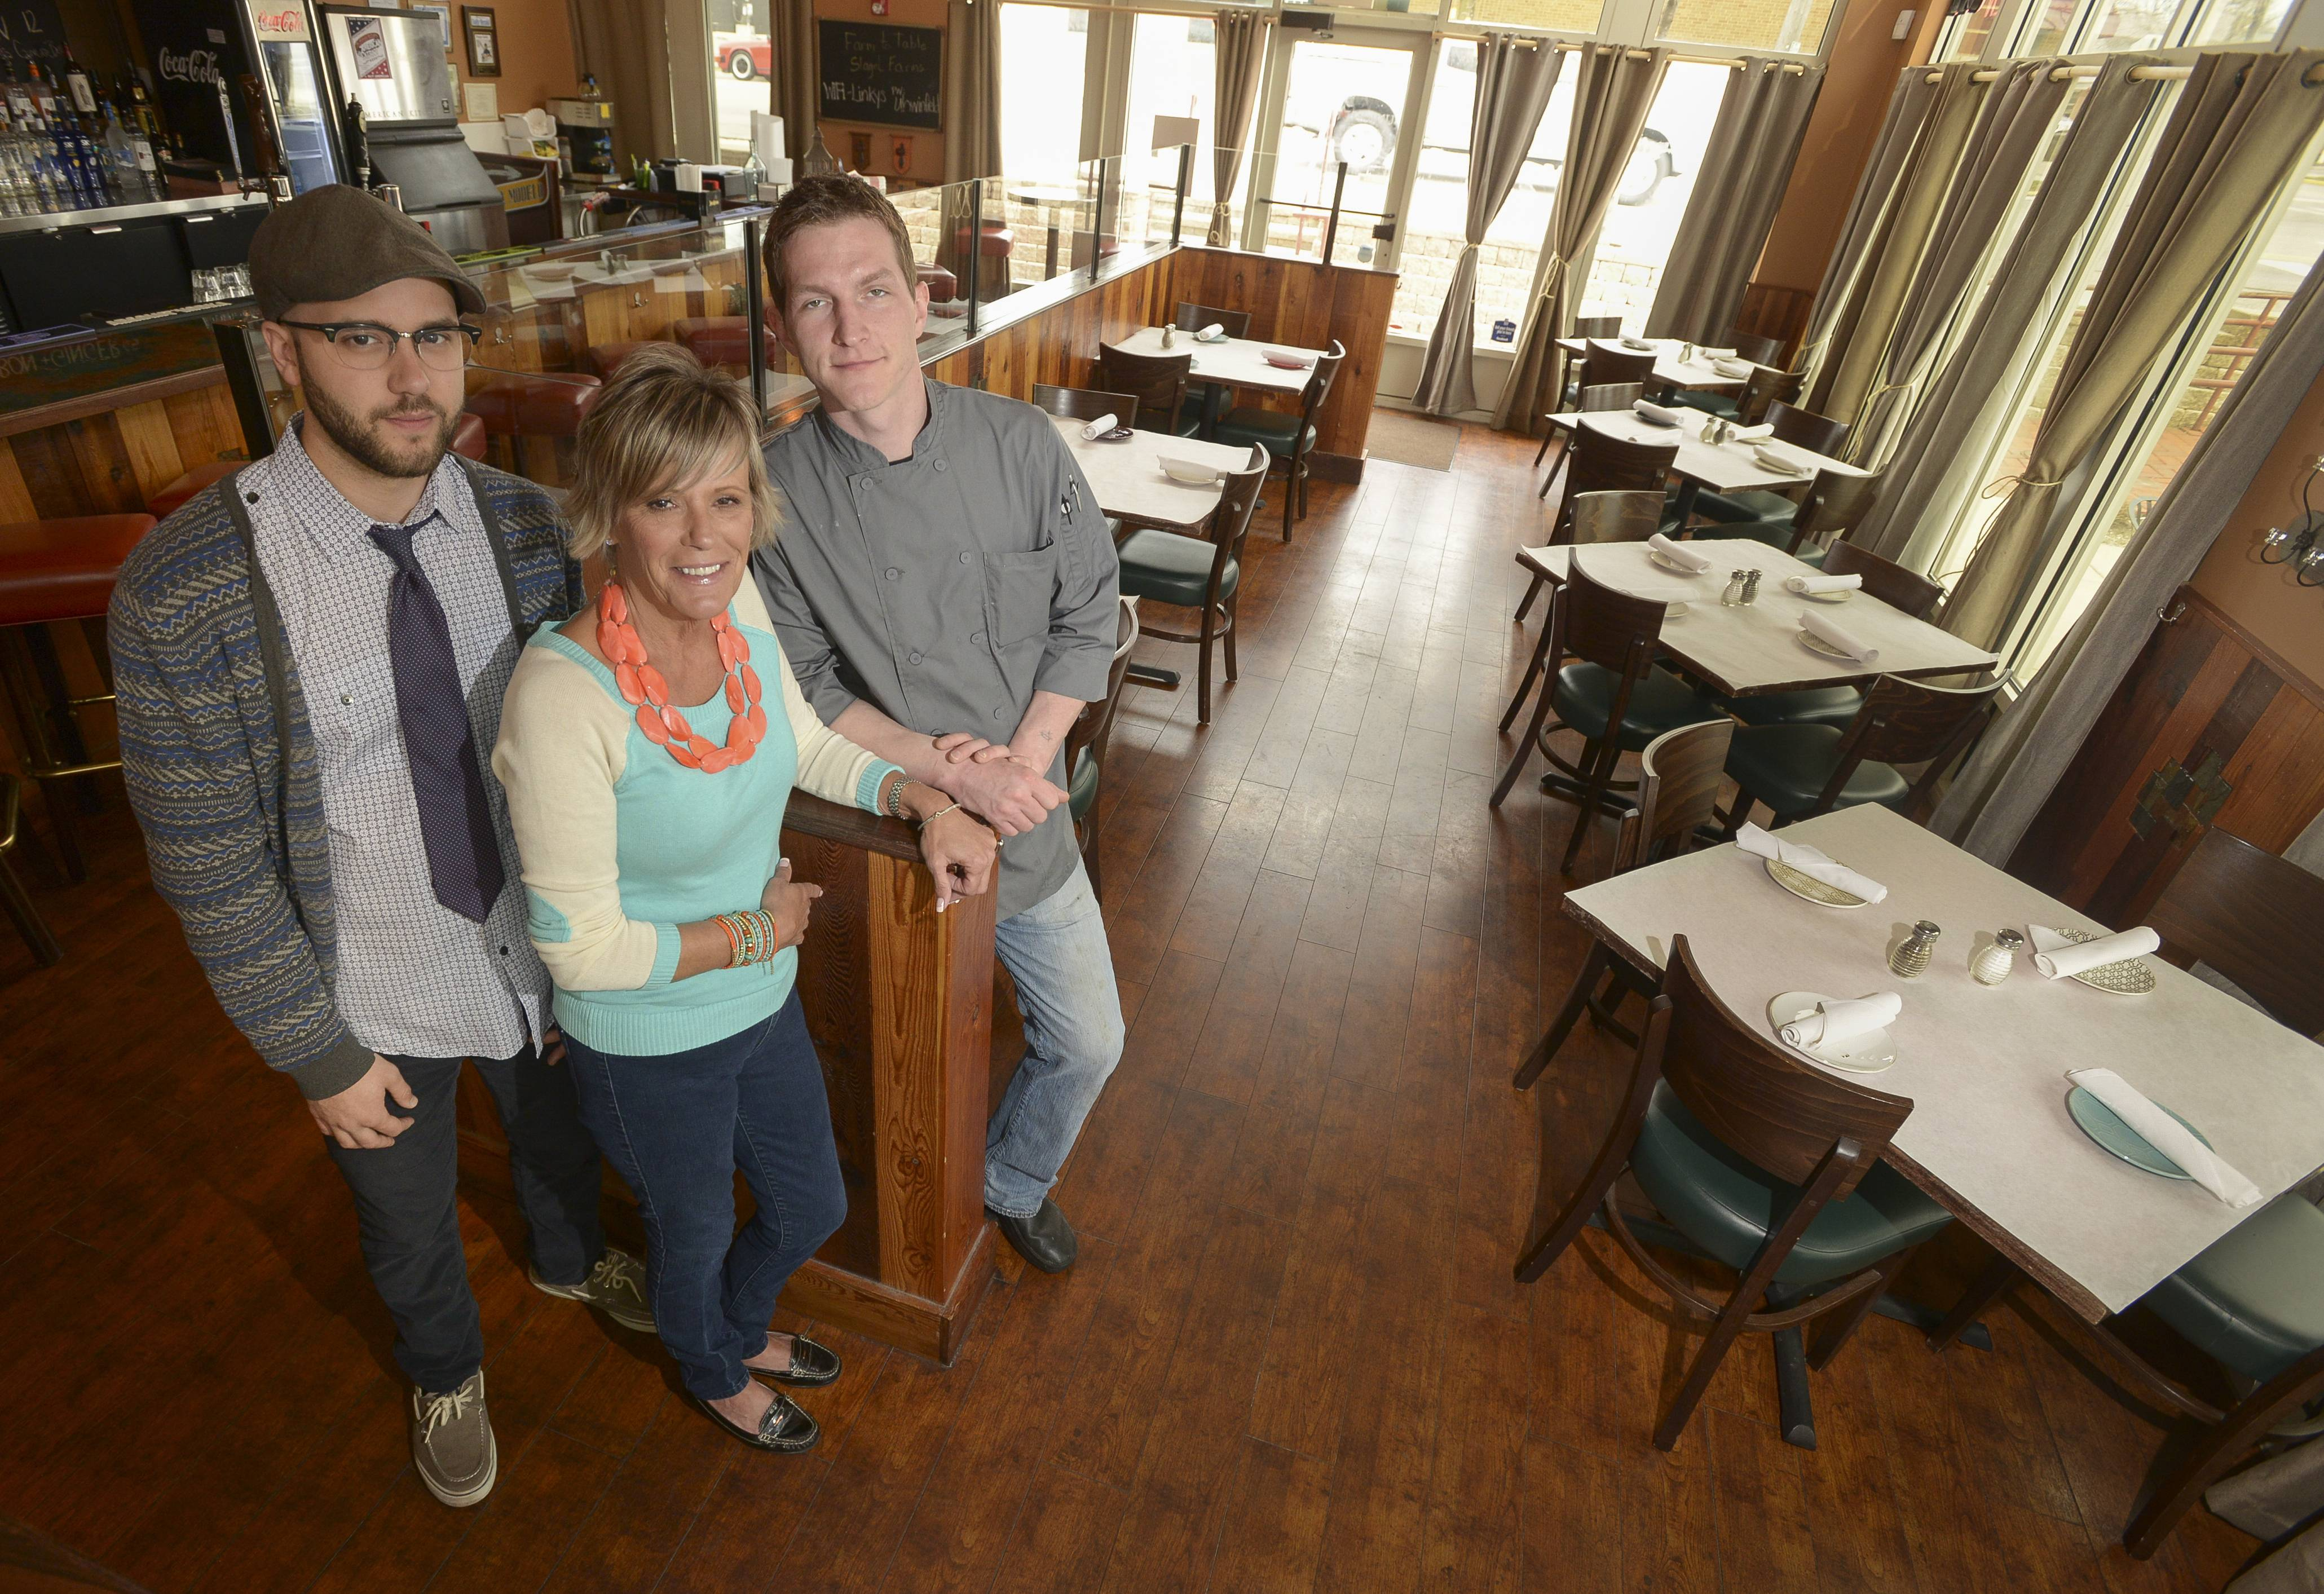 Union House came together with the mother-son team of owners Midge and Mario Misceo and chef Adam Howard.